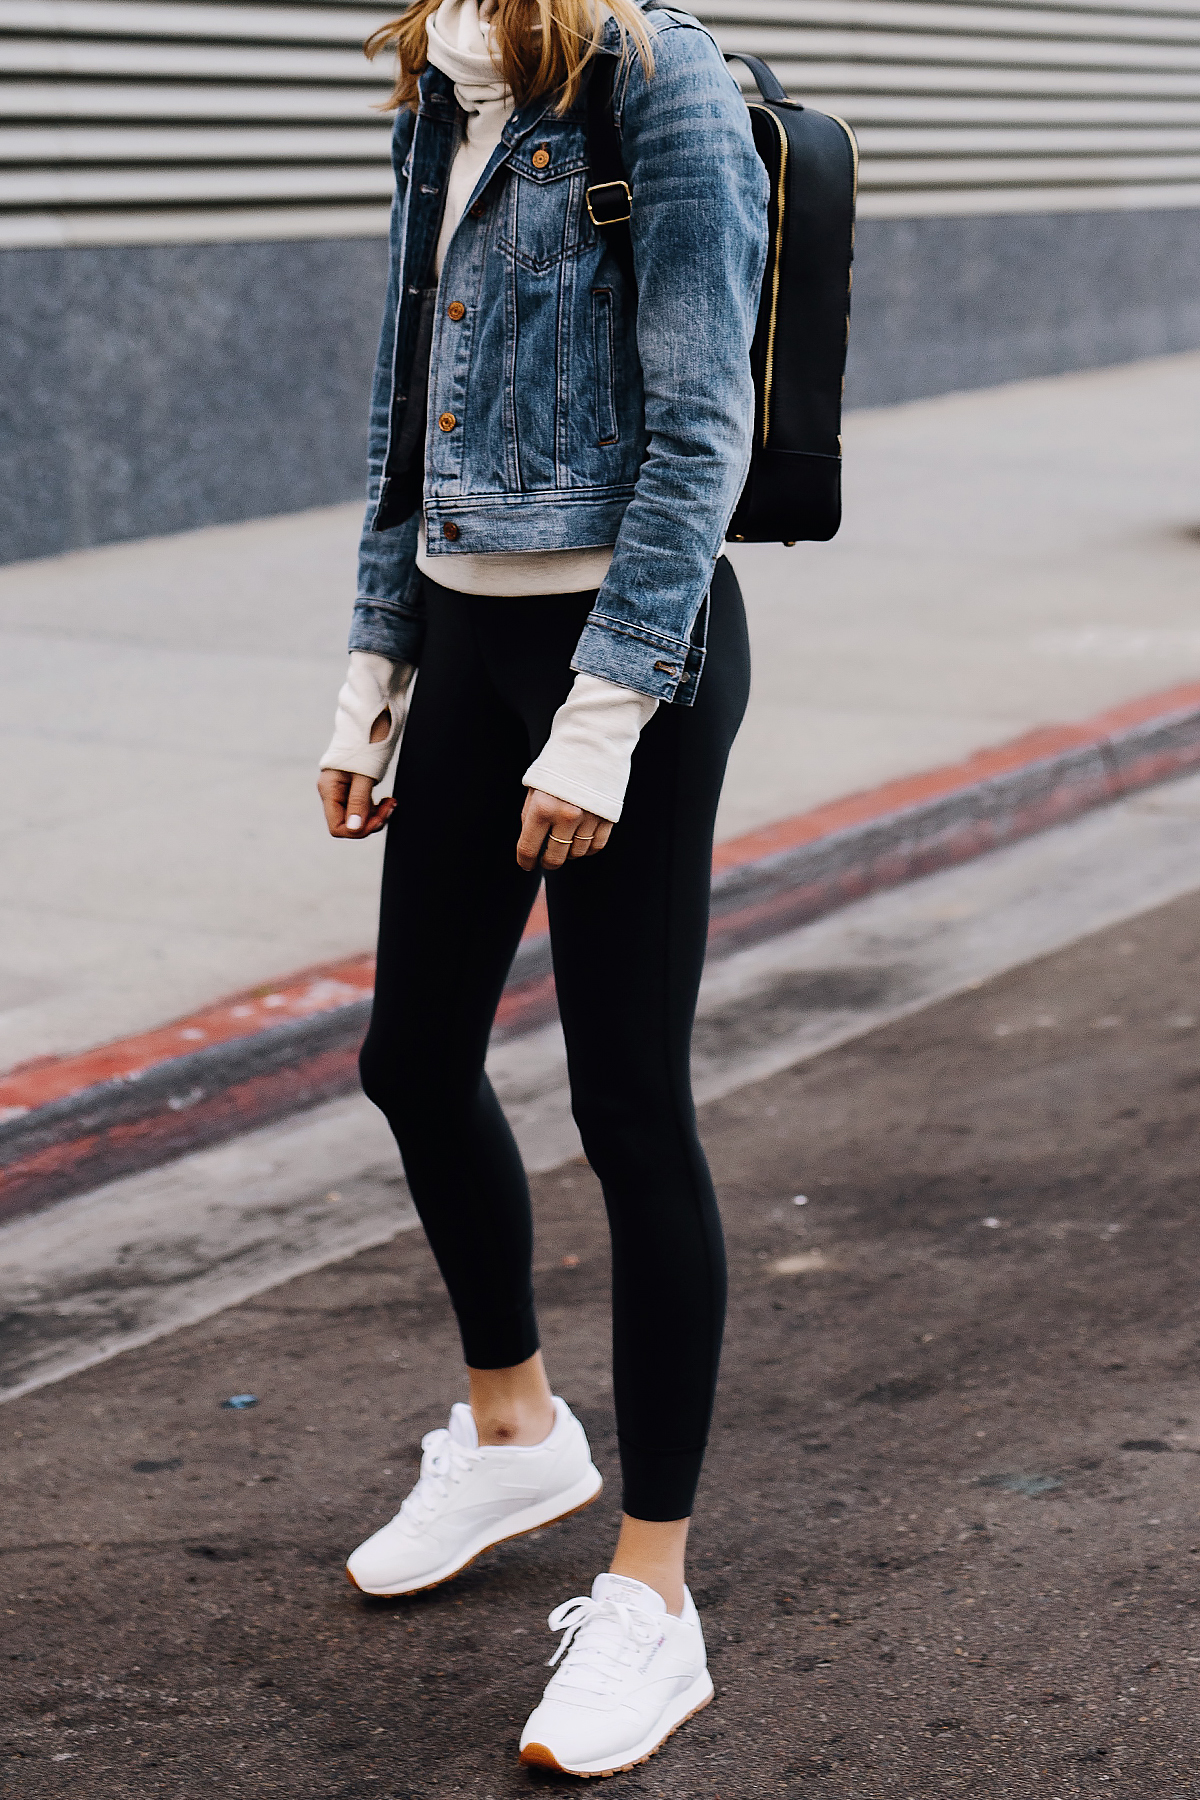 Blonde Woman Wearing Athleisure Outfit Denim Jacket Grey Sweatshirt Black Leggings Reebok Classic White Sneakers Black Fashion Jackson San Diego Fashion Blogger Street Style